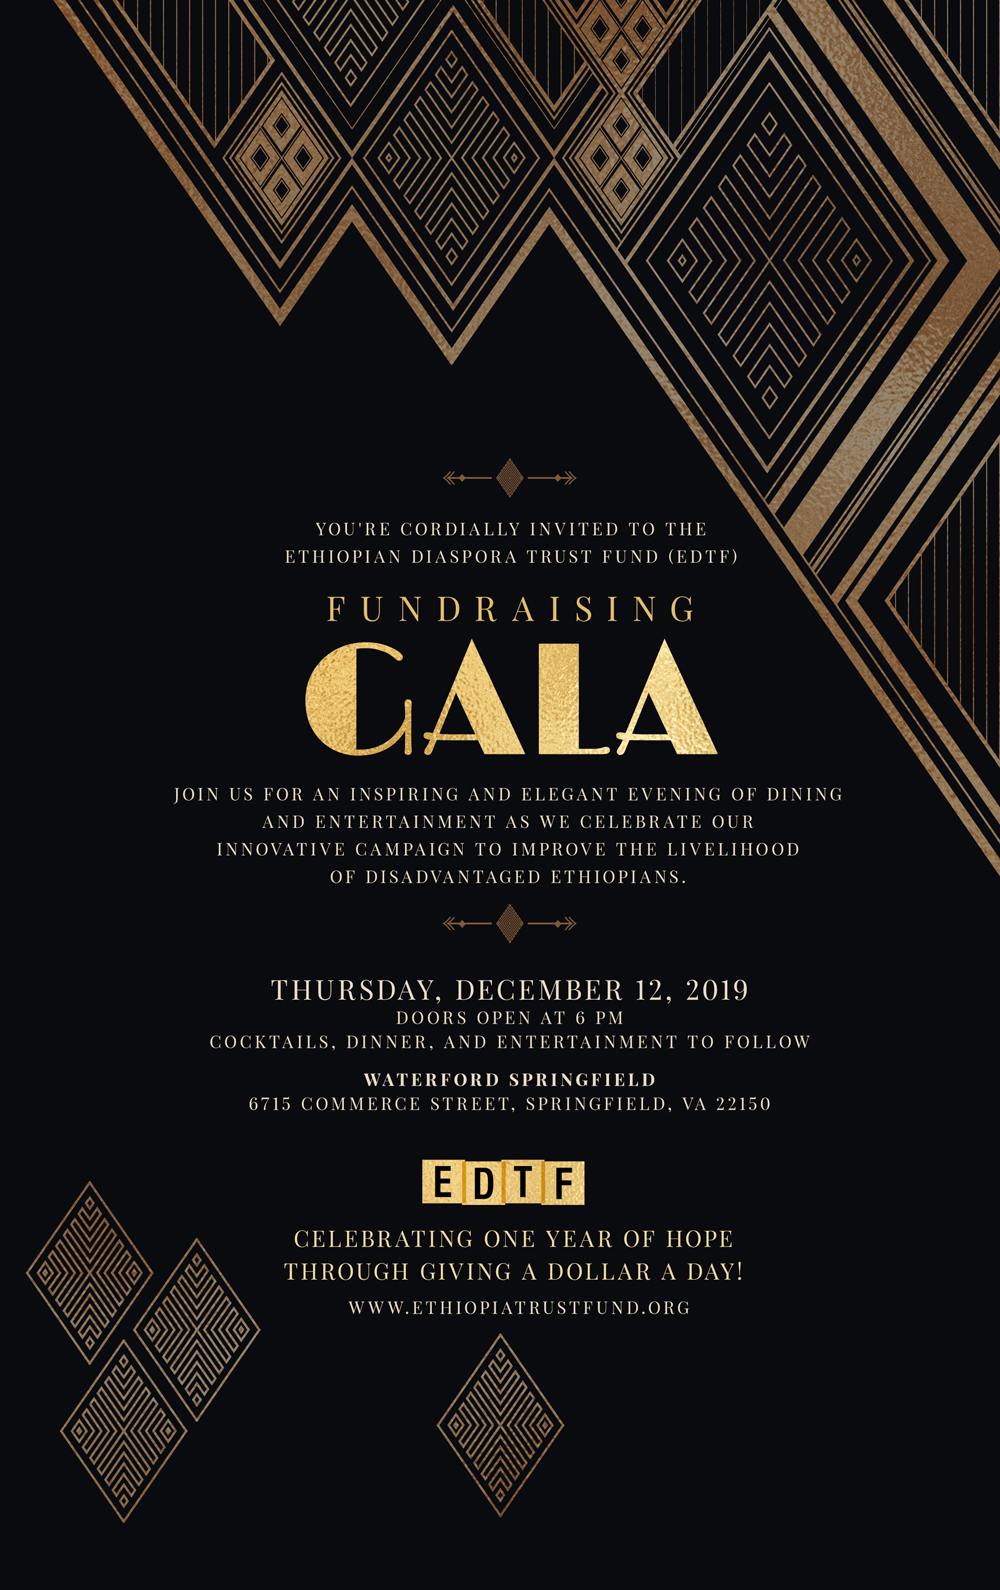 EDTF-Fundraising-Gala_2019_invitation